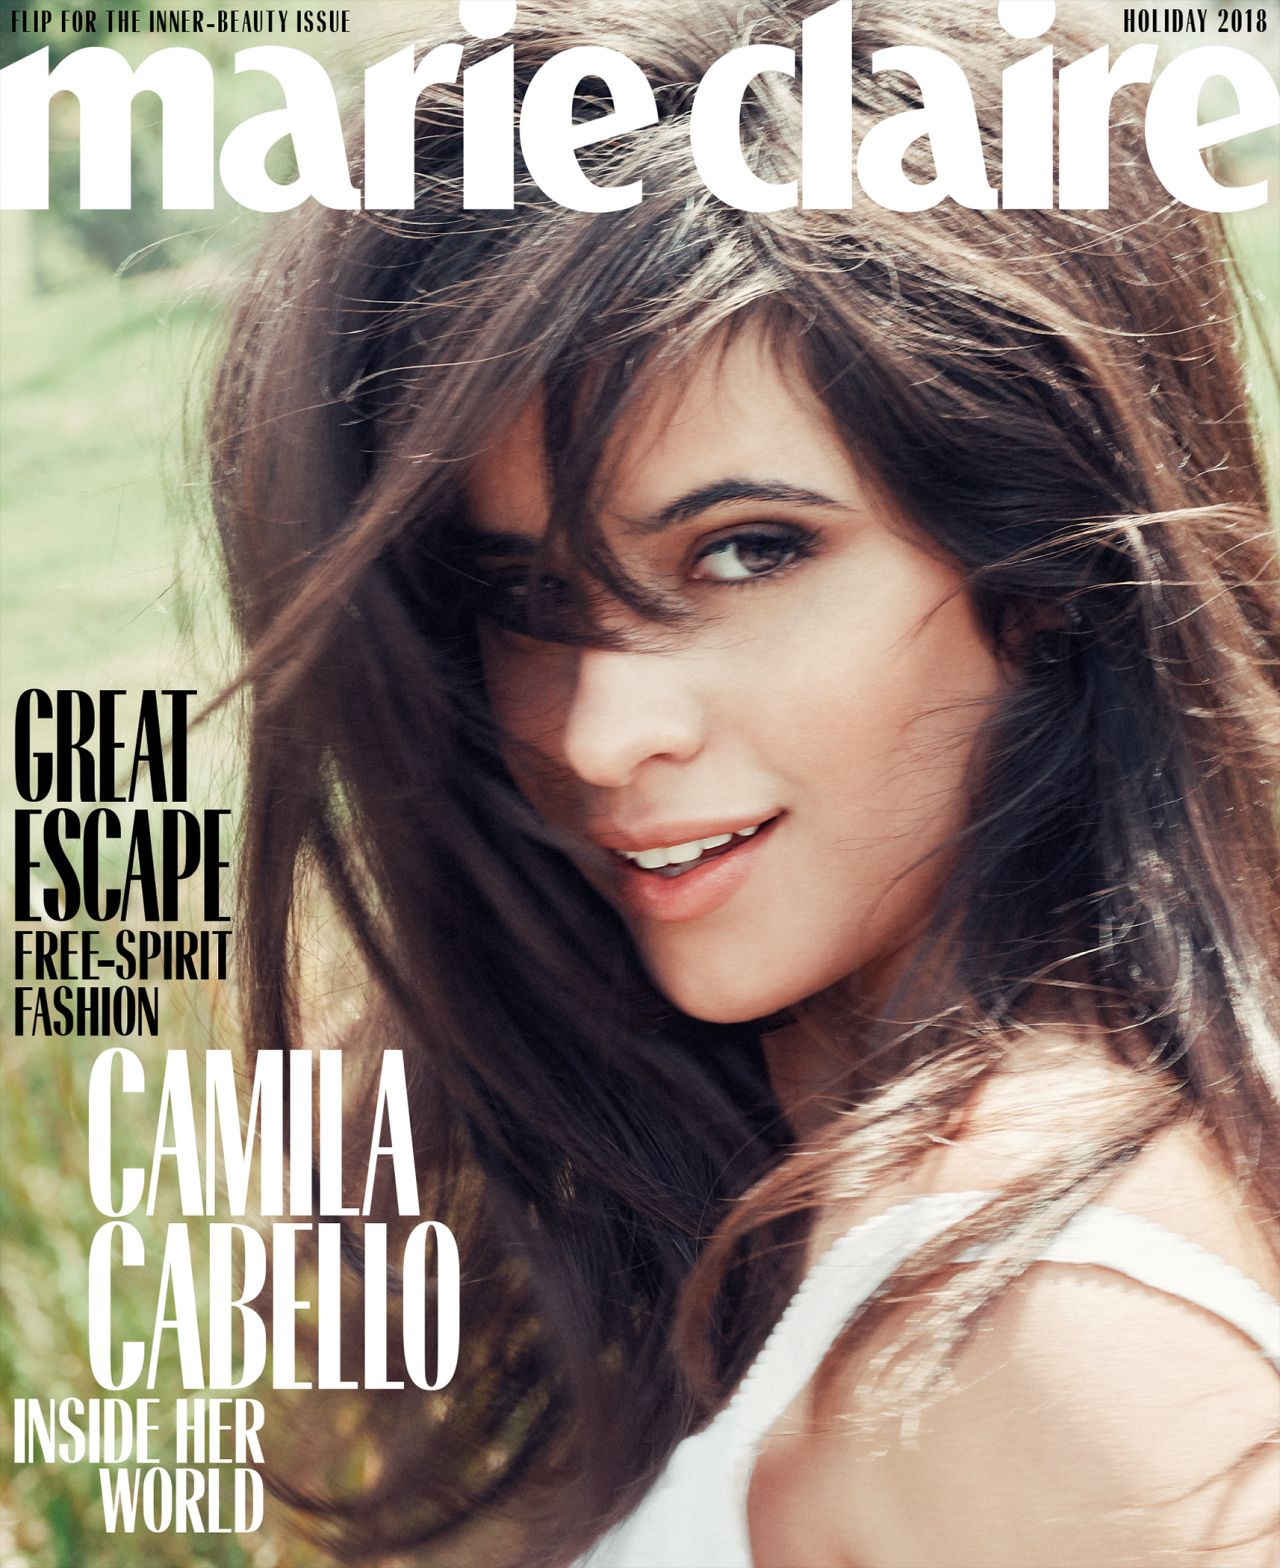 Camila Cabello Marie Claire Us Holiday 2018